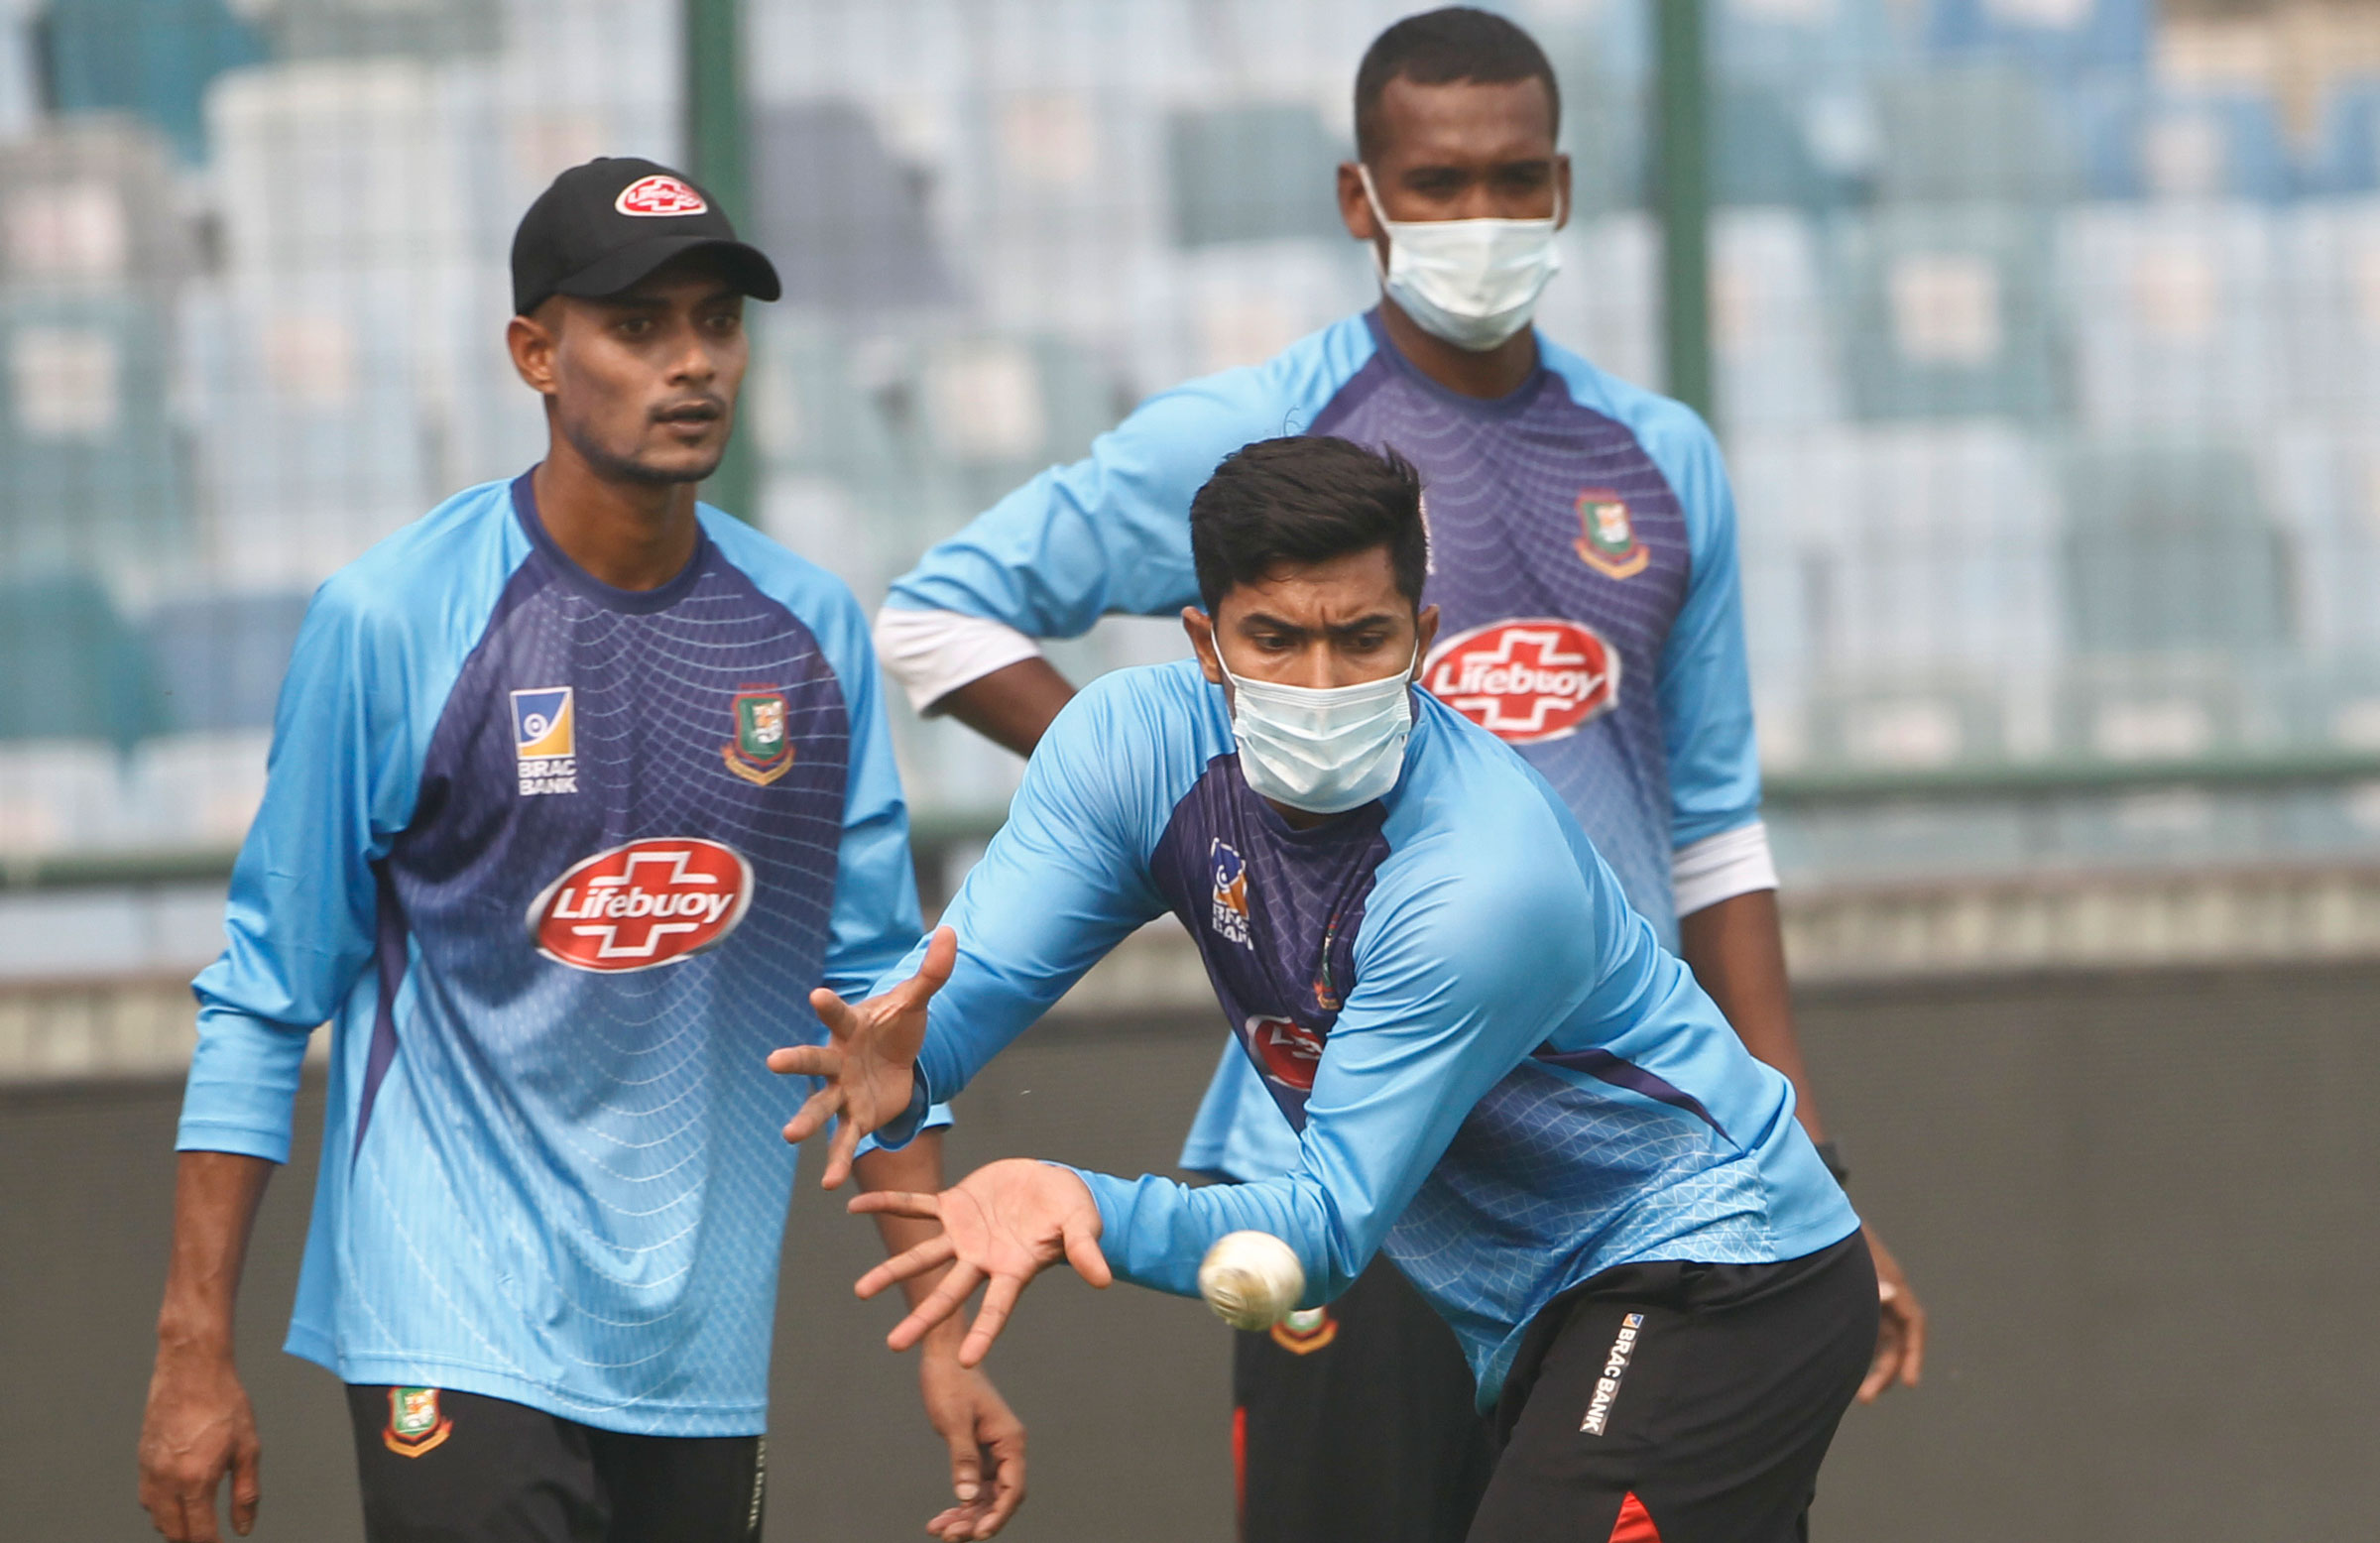 Smog in Delhi recently forced Bangladesh players to train in masks // Getty Images